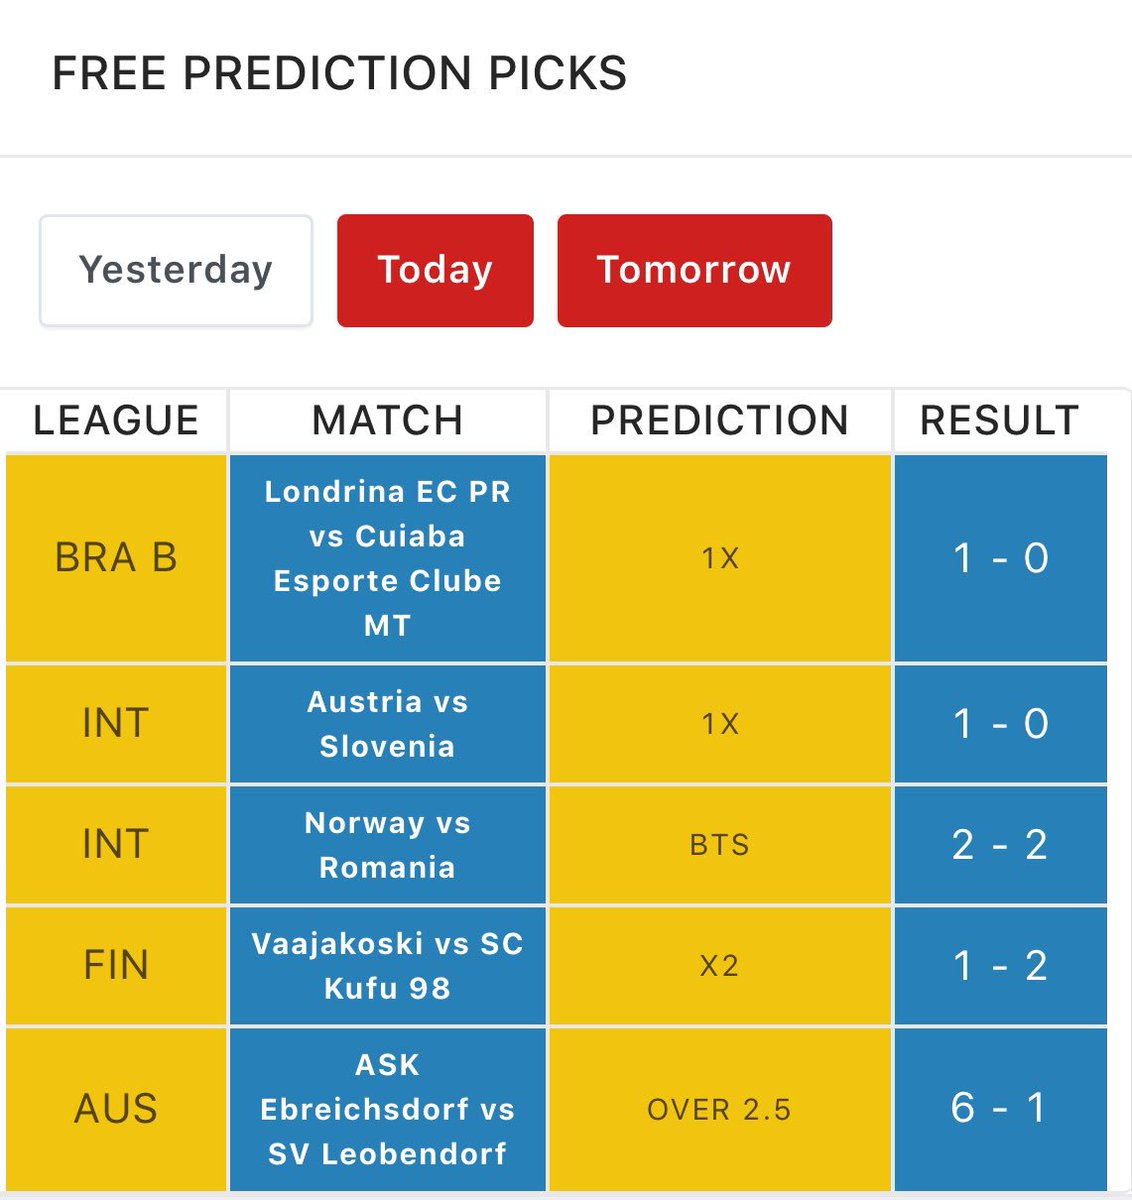 100% Winning with our free prediction picks!💪⚽️ join us